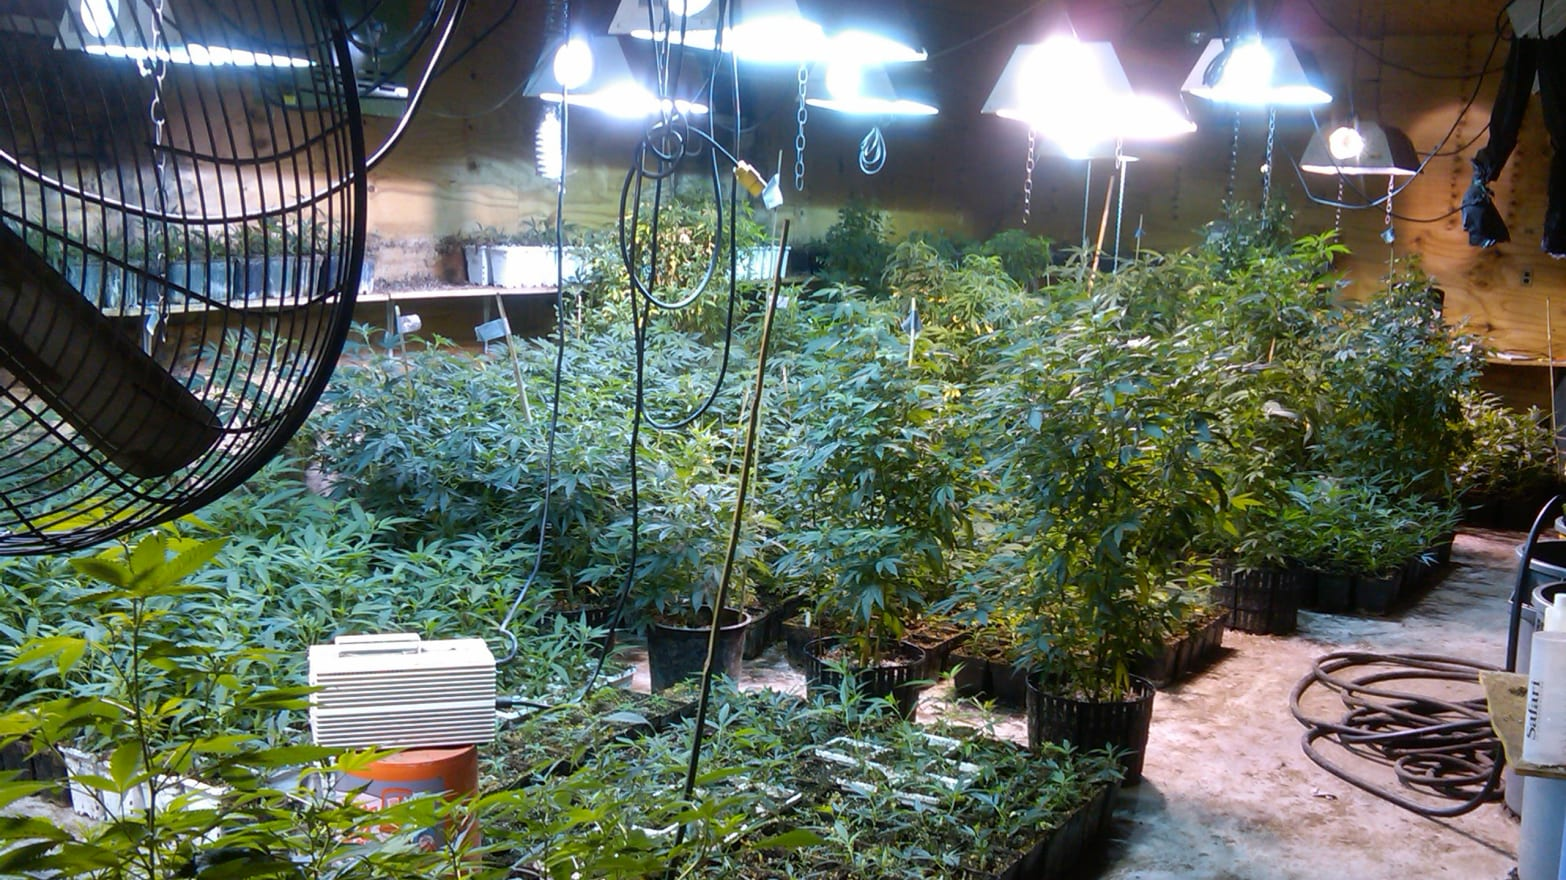 Weeds' Come to Life? Scarsdale Mom Arrested in Massive Pot Bust